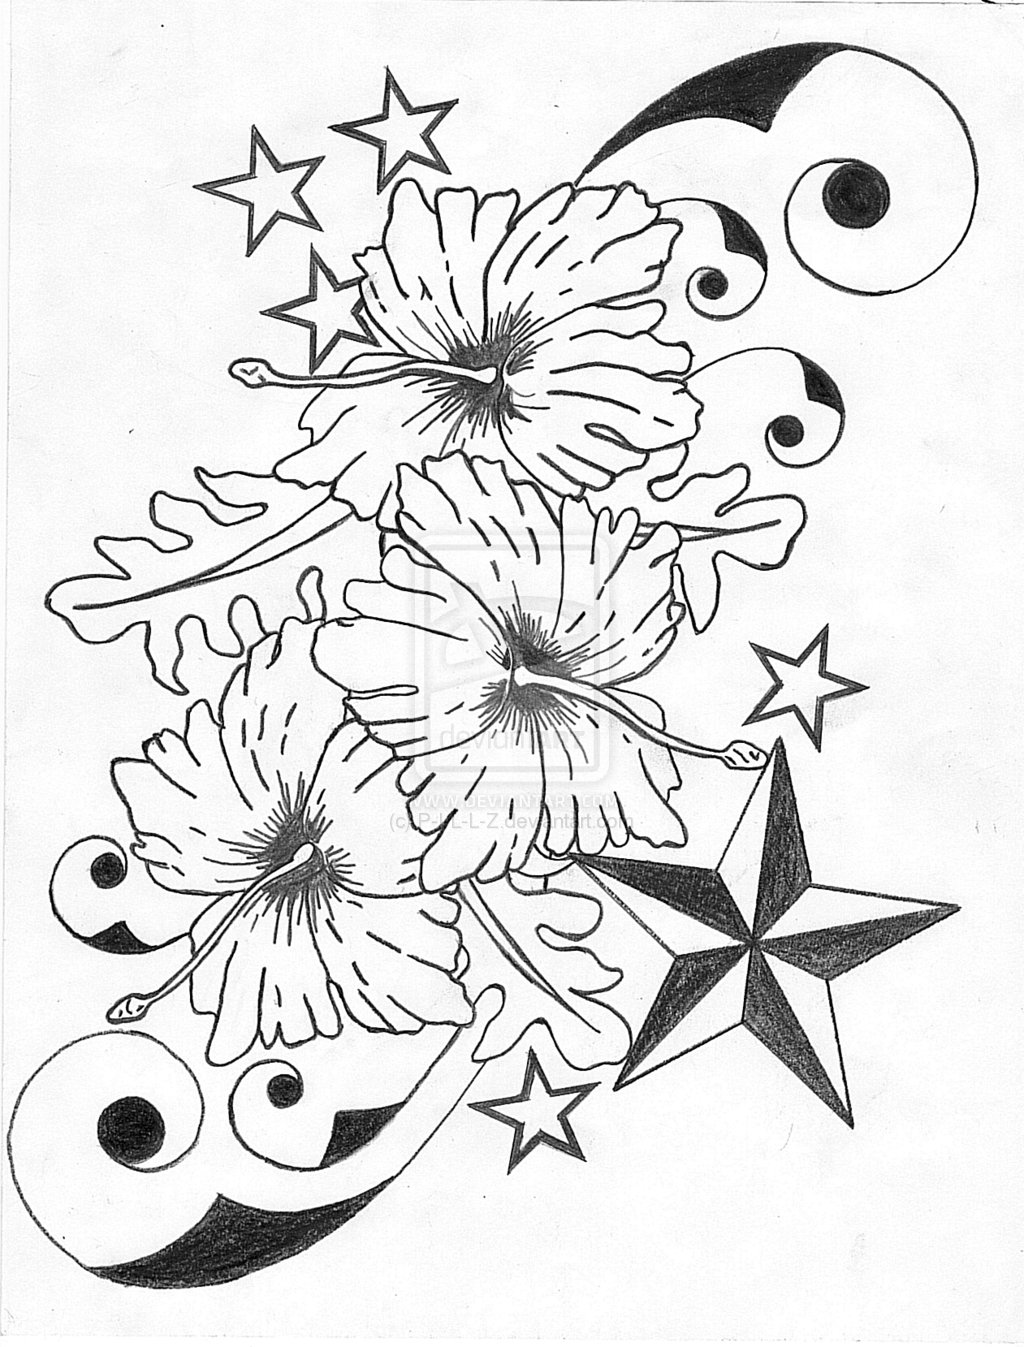 Nautical tattoos designs and ideas page 25 - Tattoos On Pinterest Star Tattoos Friendship Tattoos And 25 Best Ideas